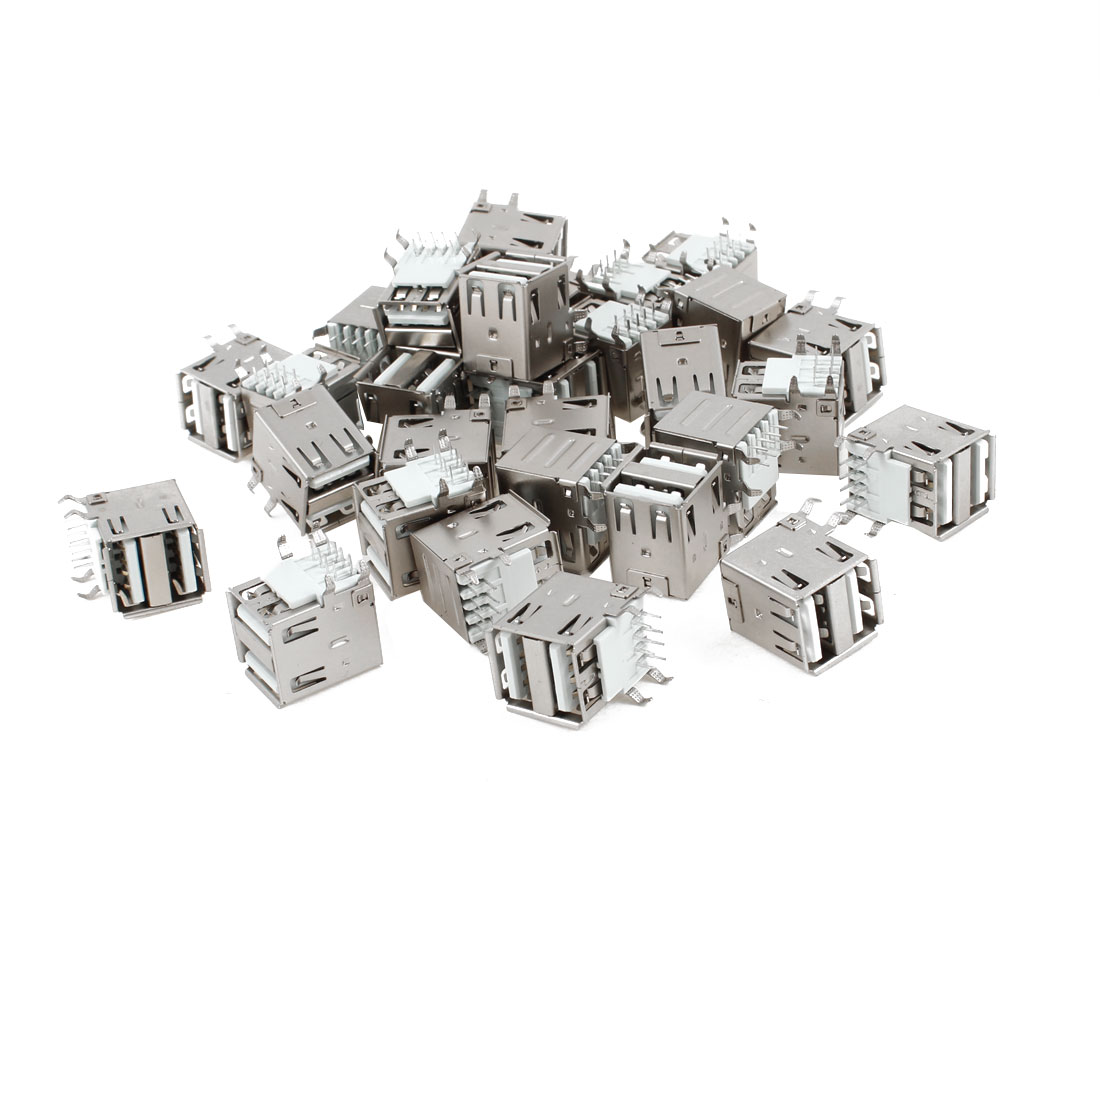 30 Pcs Dual USB Type A Right Angle DIP 8-Pin Female Jack Socket Connector